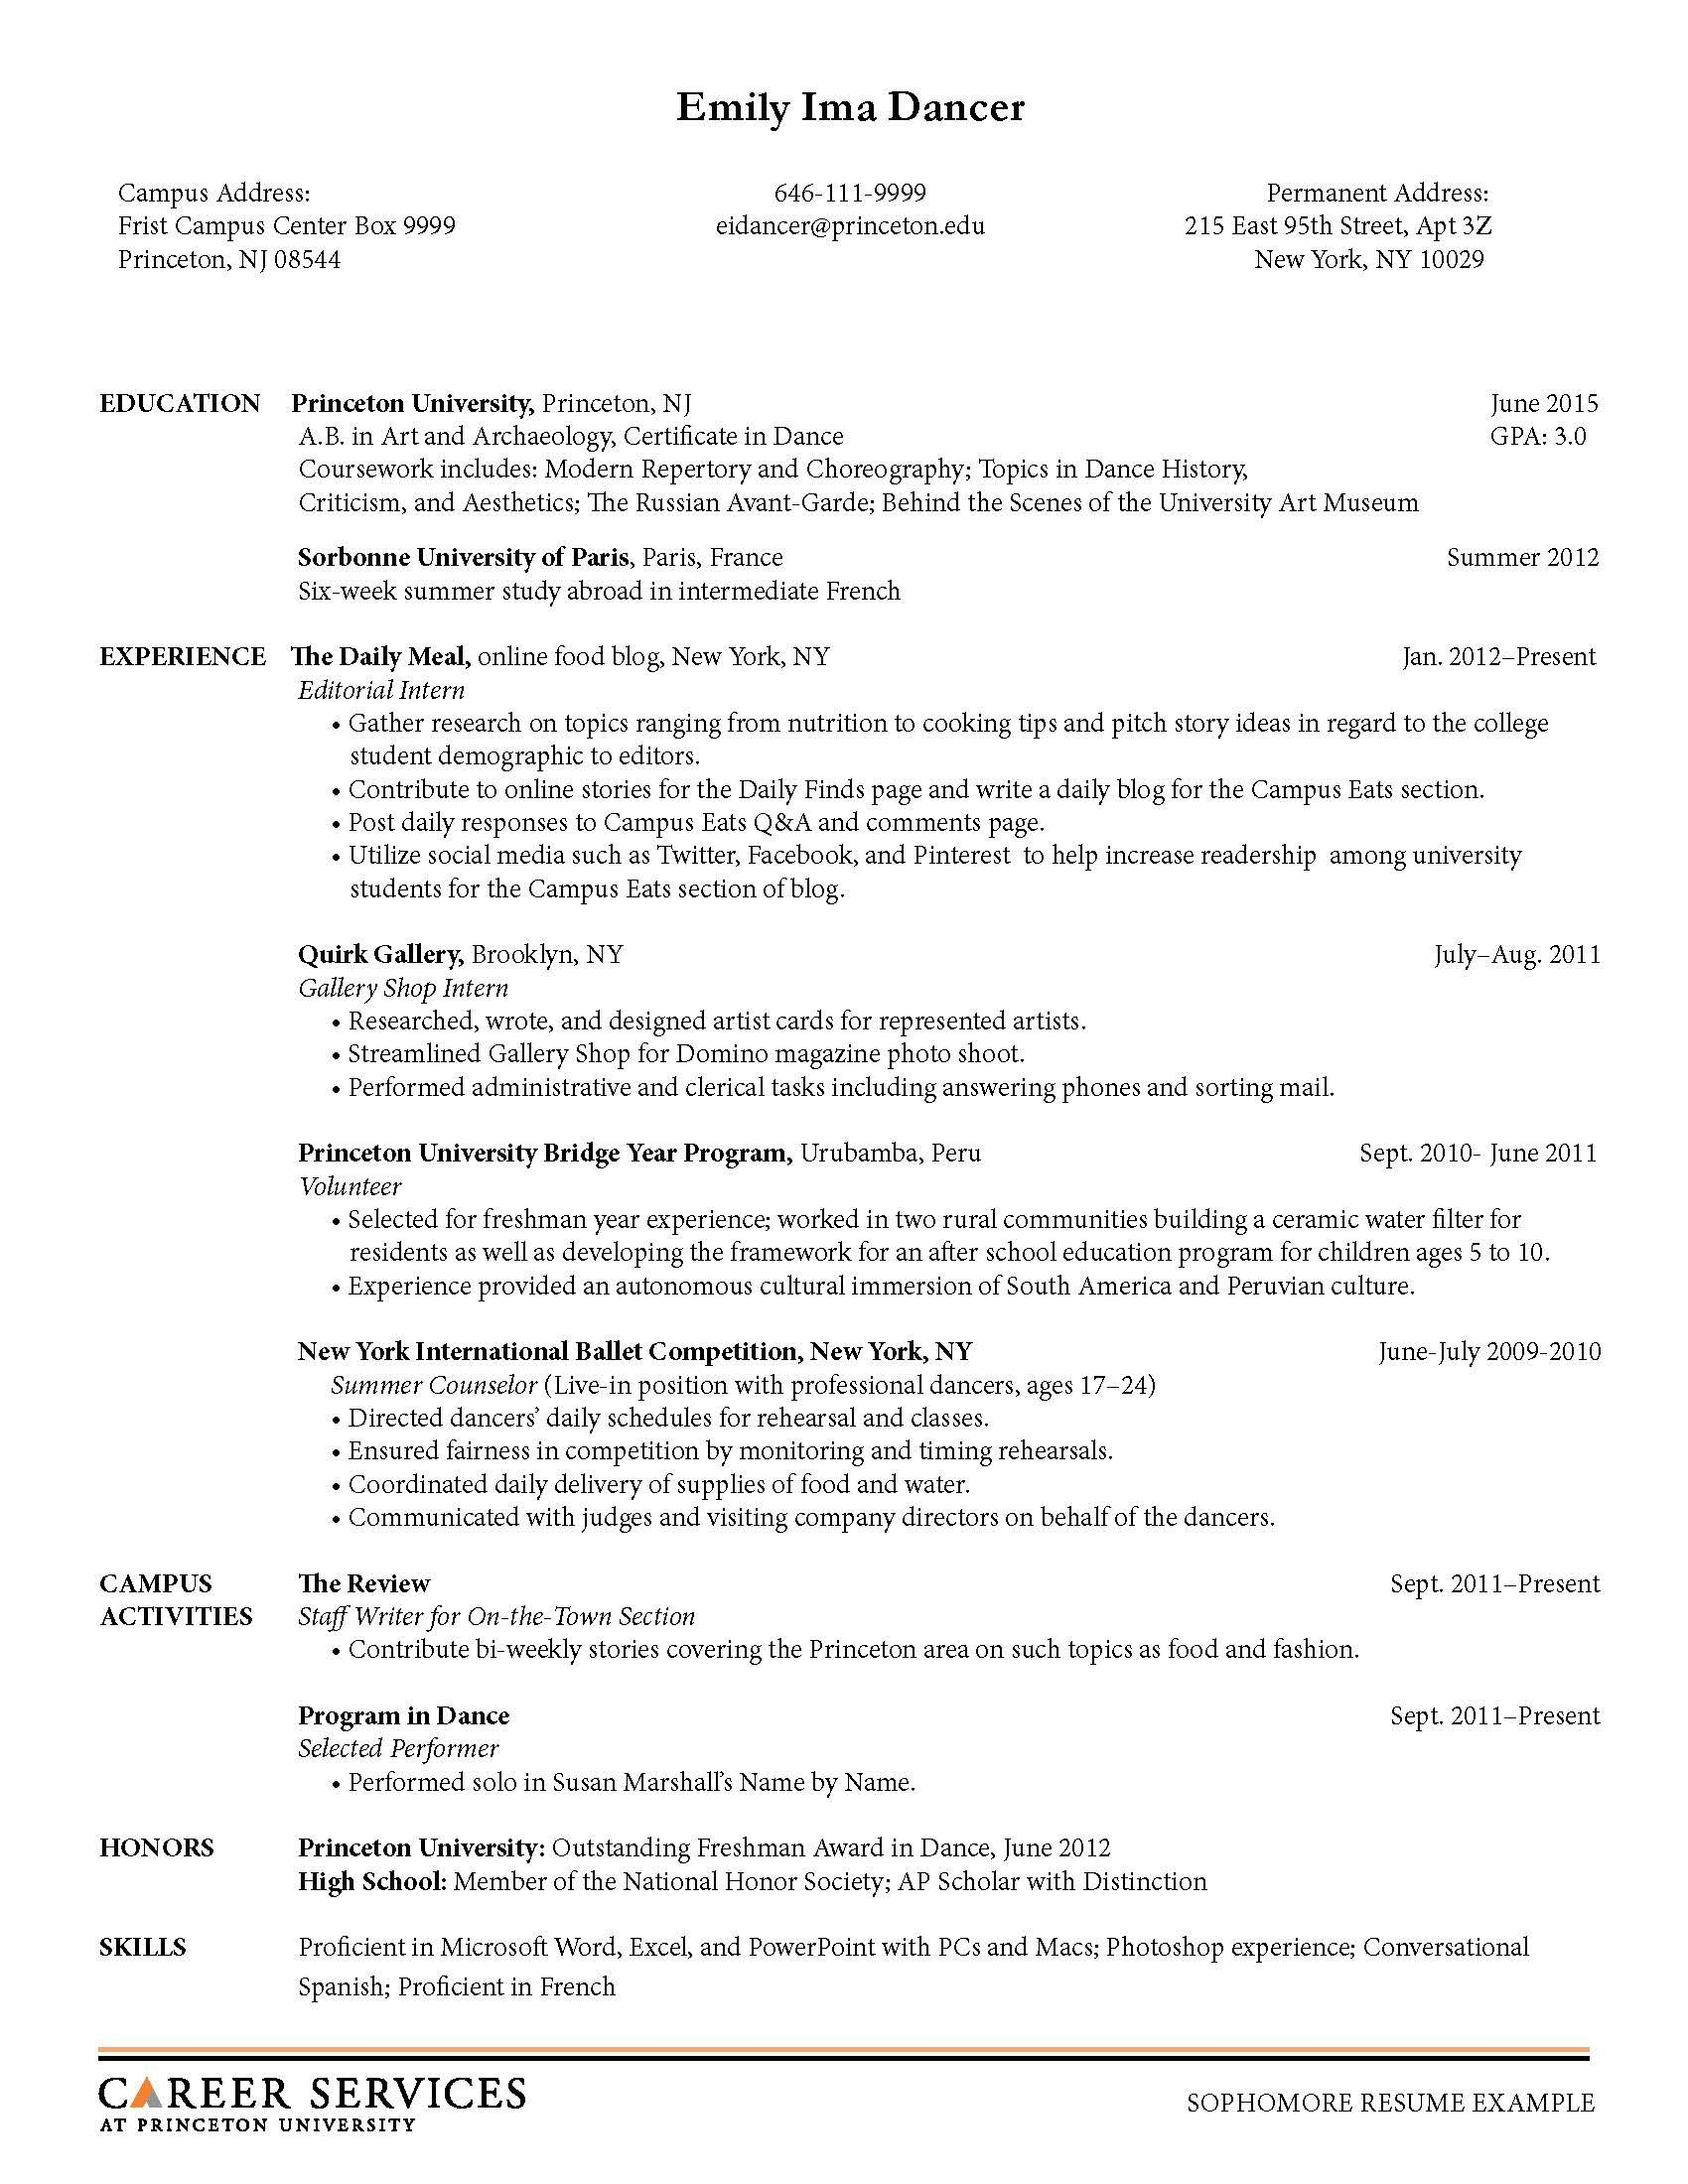 Opposenewapstandardsus  Seductive Sample Resume Resume And Career On Pinterest With Licious Acting Resume No Experience Besides Creative Resume Layouts Furthermore Mortgage Processor Resume With Adorable Hospitality Resume Objective Also Human Resources Director Resume In Addition Resume For Law School Application And Adjectives To Use On A Resume As Well As Entry Level Resume Templates Additionally Resume Executive Assistant From Pinterestcom With Opposenewapstandardsus  Licious Sample Resume Resume And Career On Pinterest With Adorable Acting Resume No Experience Besides Creative Resume Layouts Furthermore Mortgage Processor Resume And Seductive Hospitality Resume Objective Also Human Resources Director Resume In Addition Resume For Law School Application From Pinterestcom